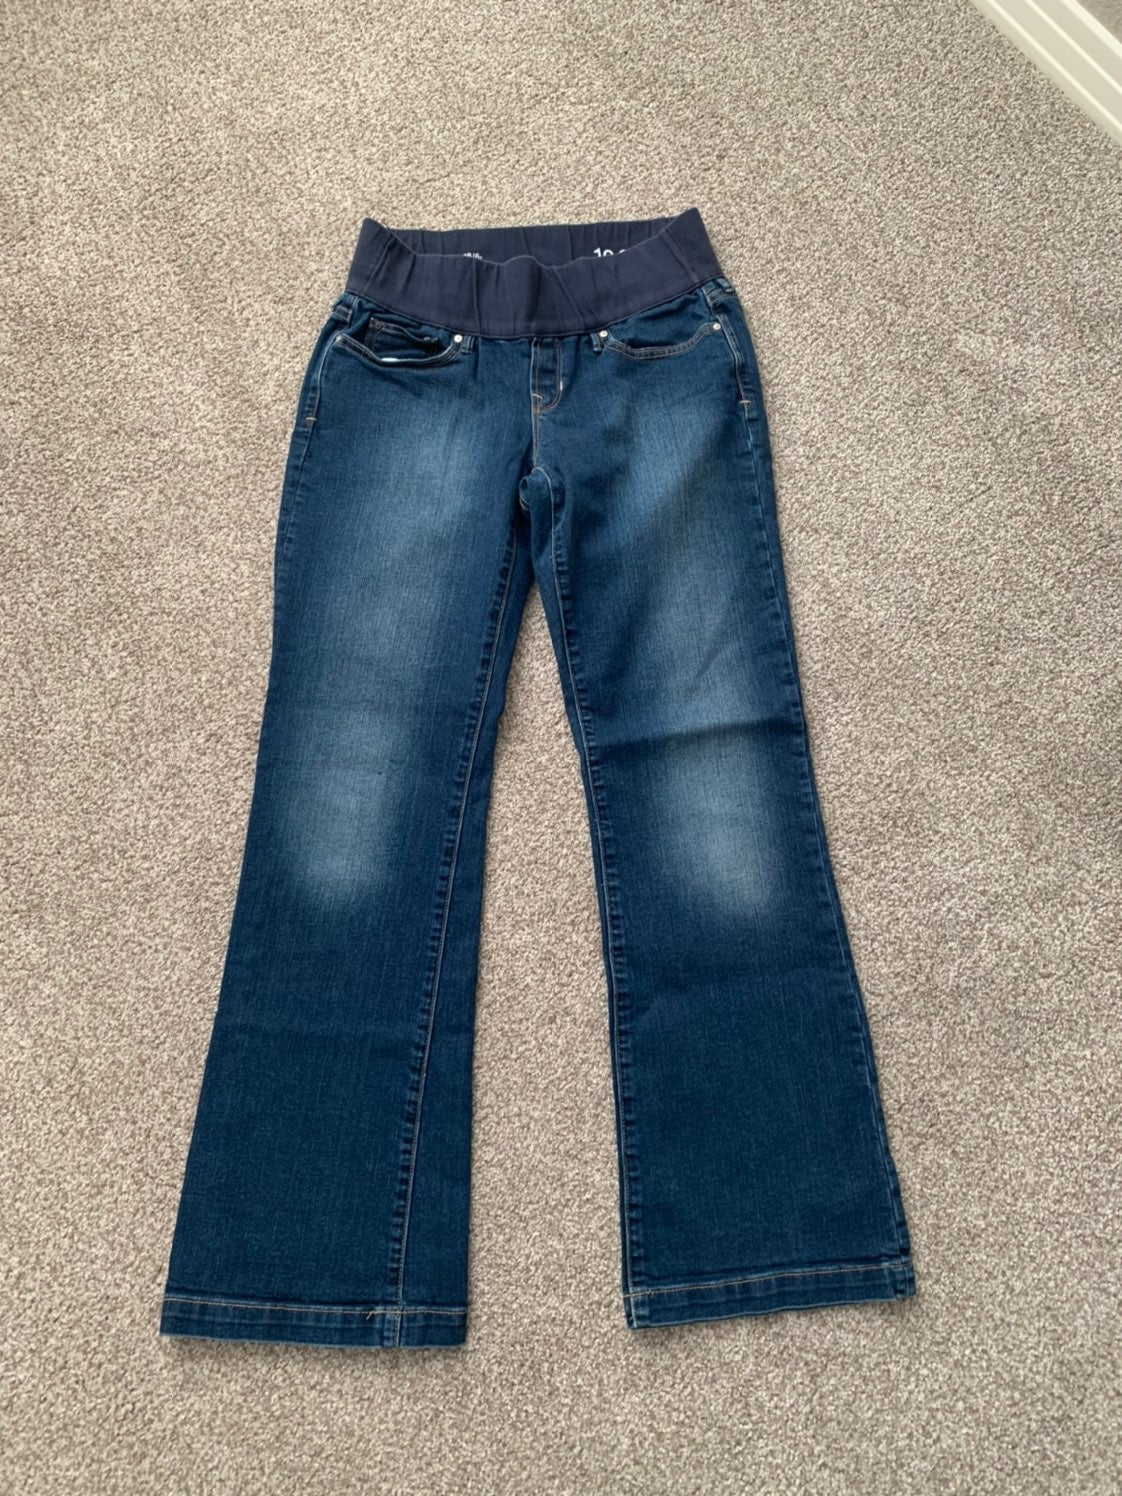 Gap long and lean maternity jeans size 6